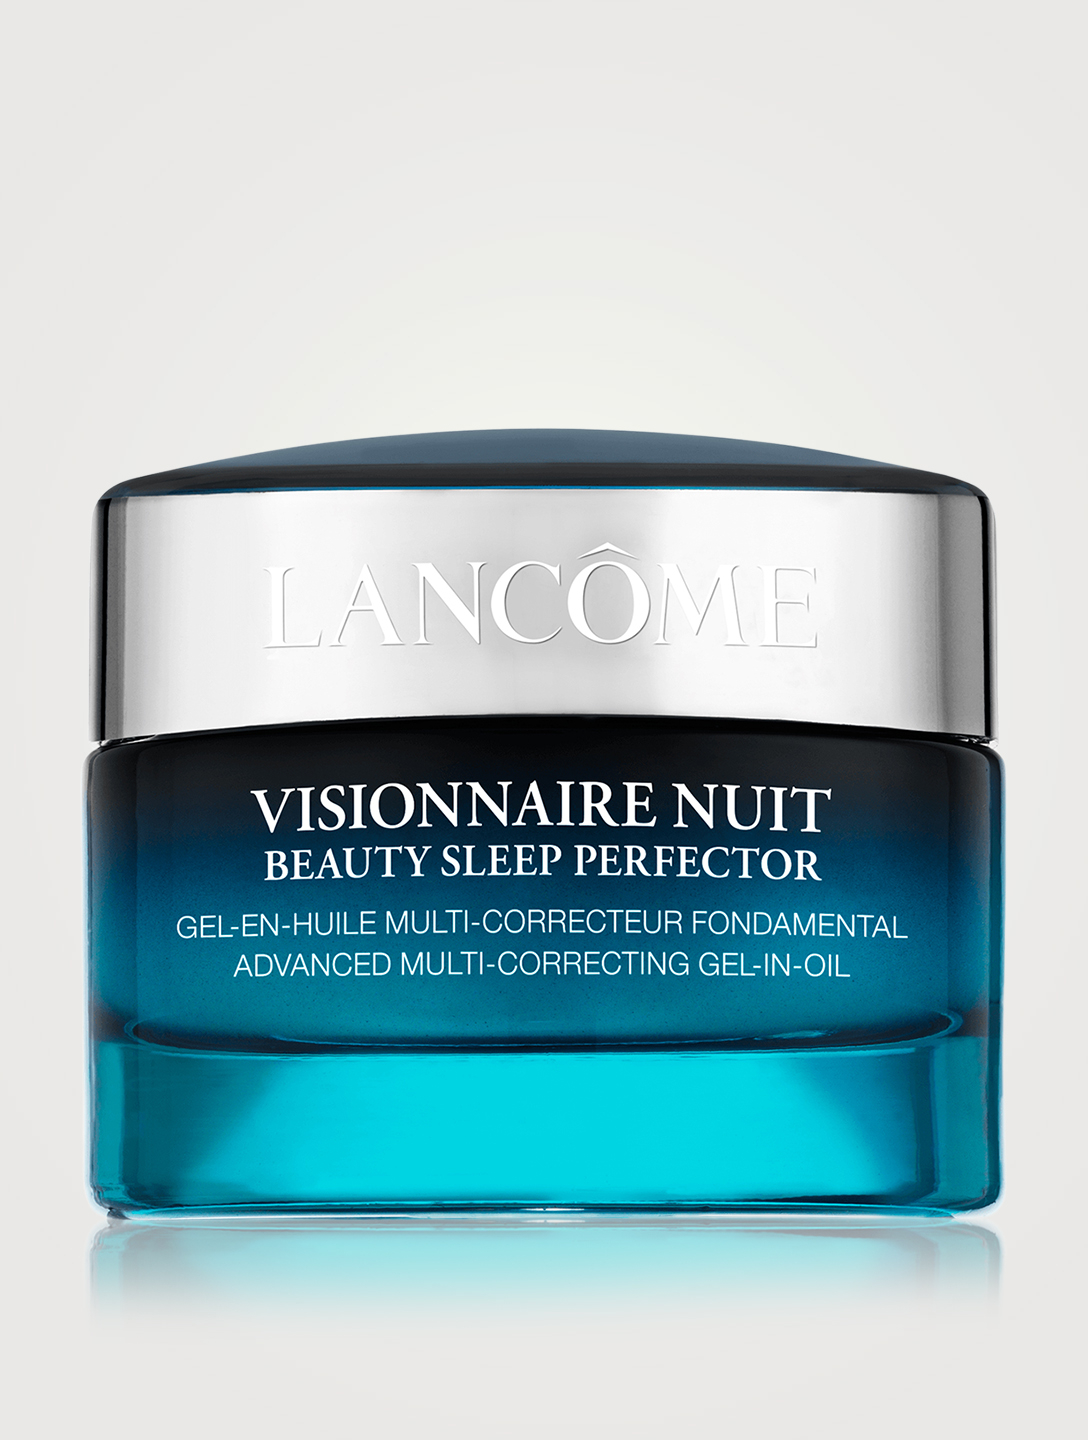 LANCÔME Visionnaire Nuit Beauty Sleep Perfector Beauty